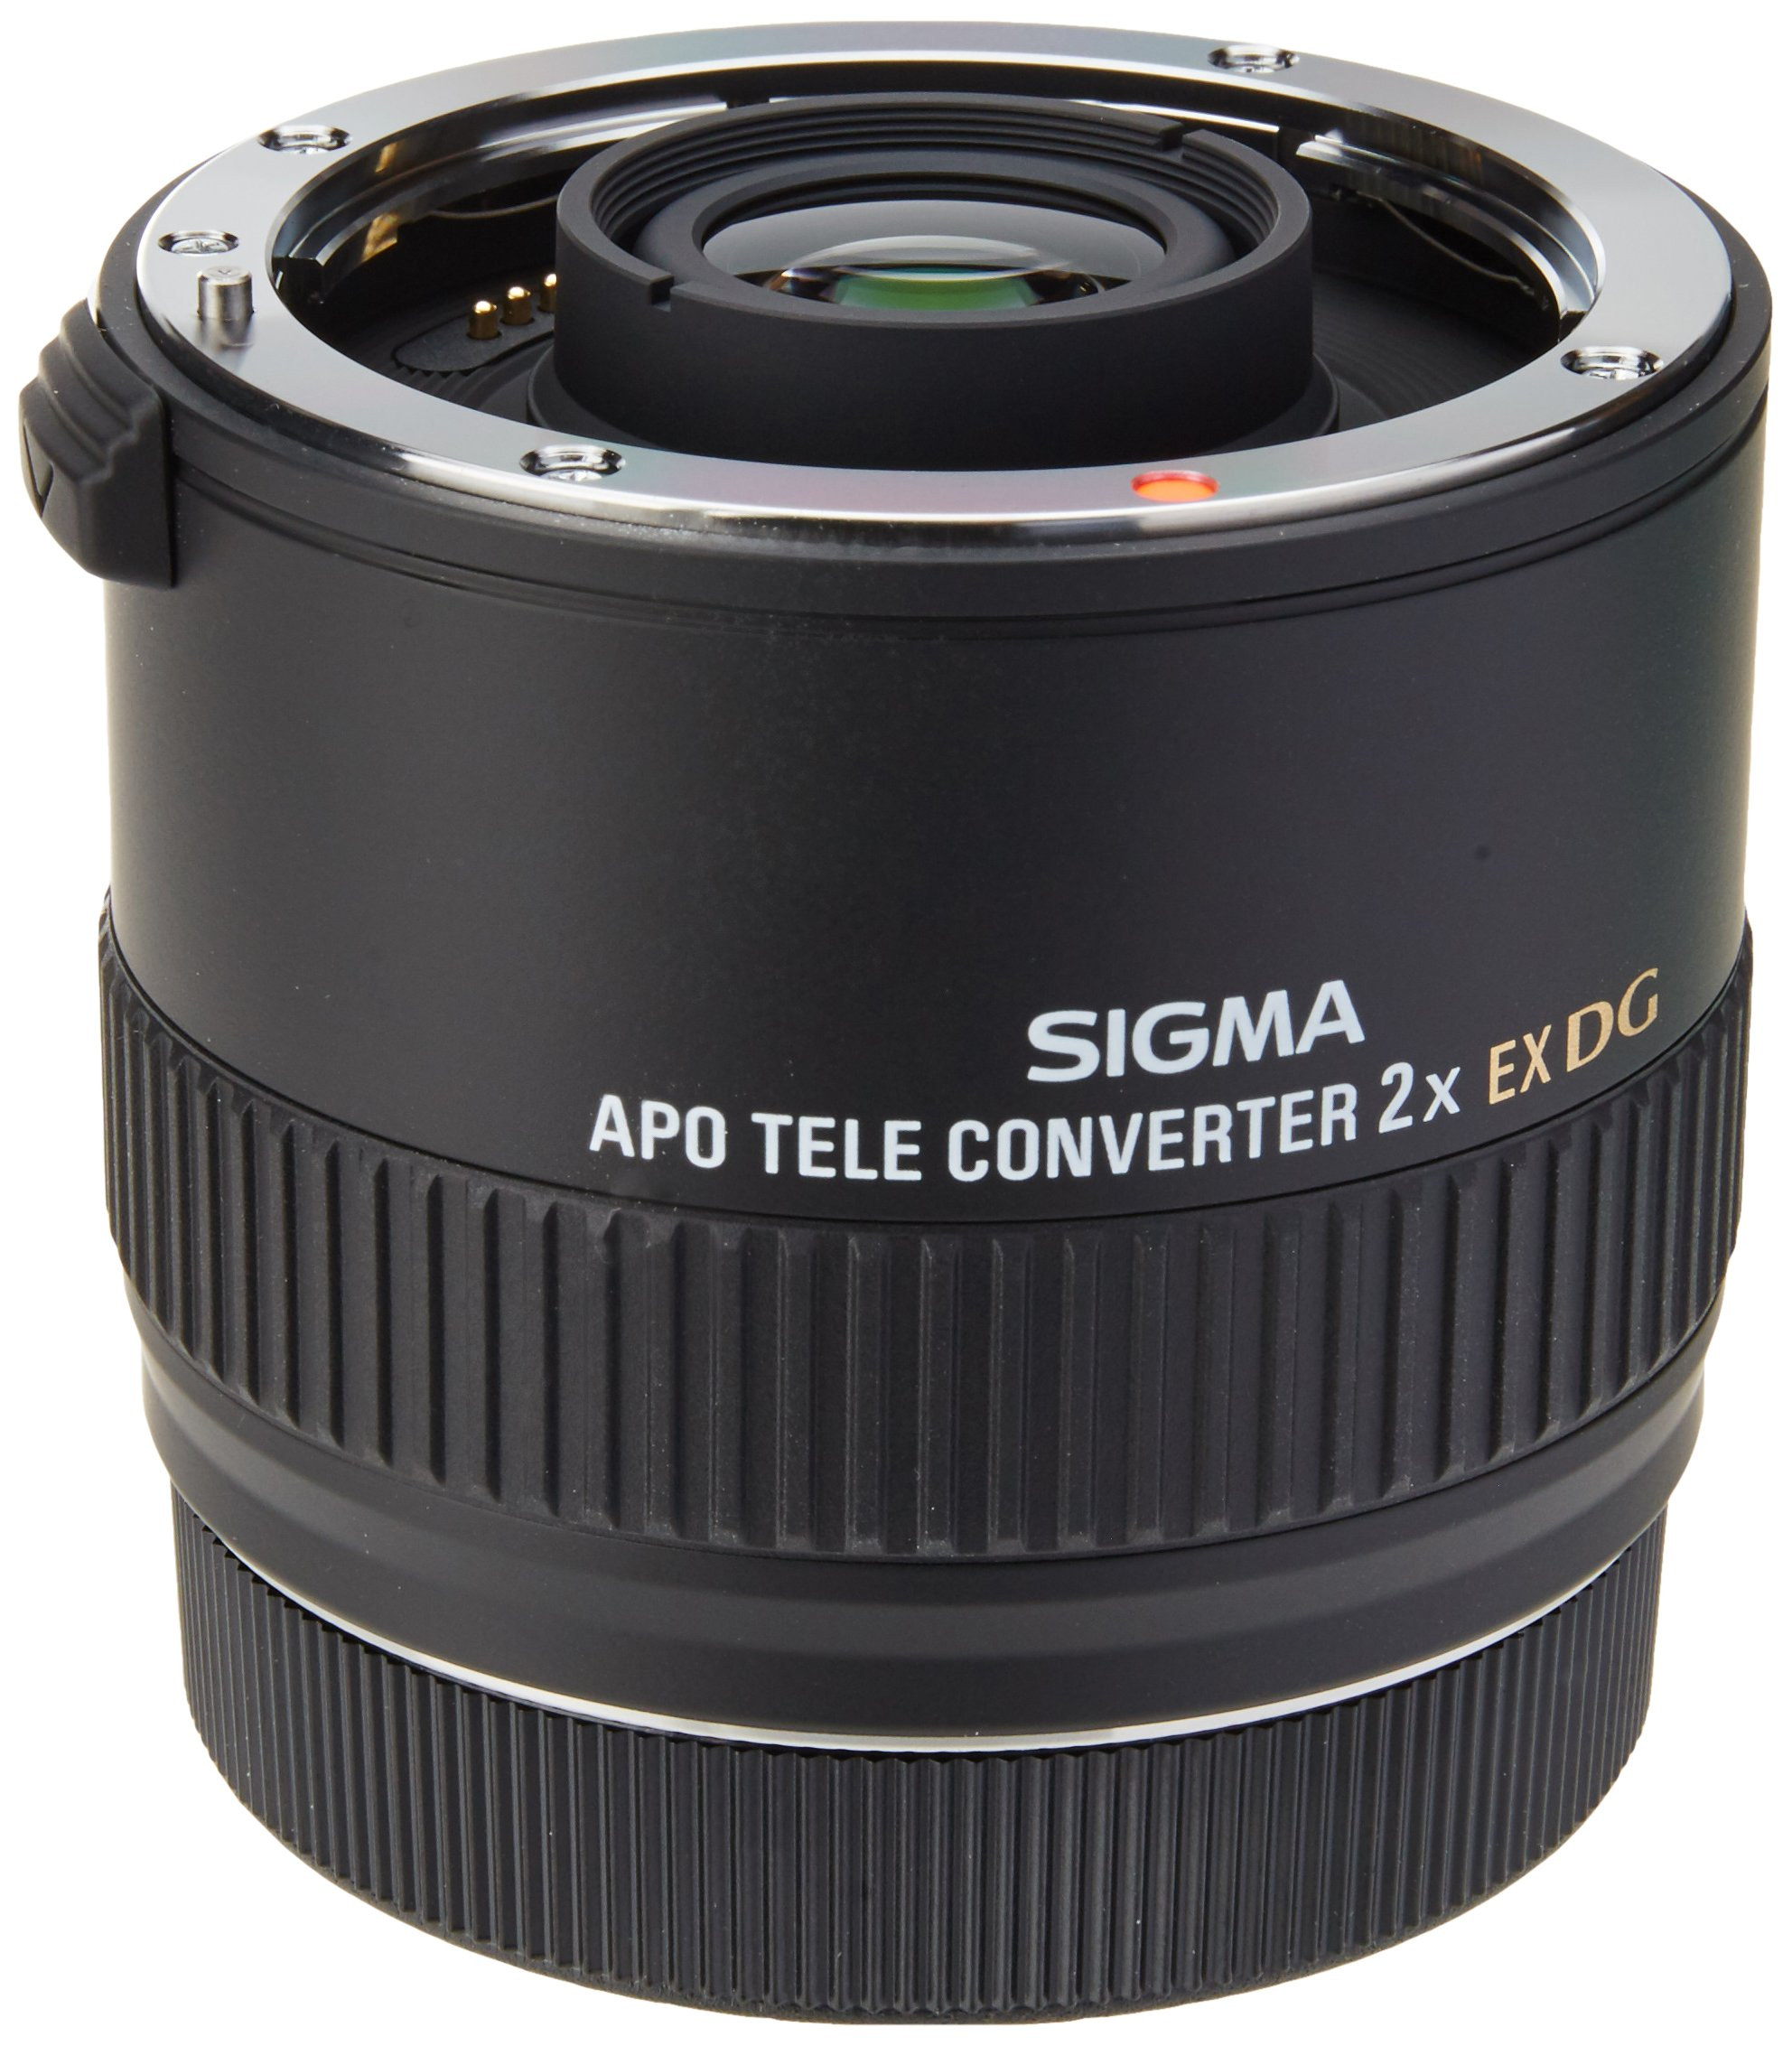 Sigma APO Teleconverter 2x EX DG for Canon Digital SLR Cameras Black - camera lenses (5/6, Black, 4